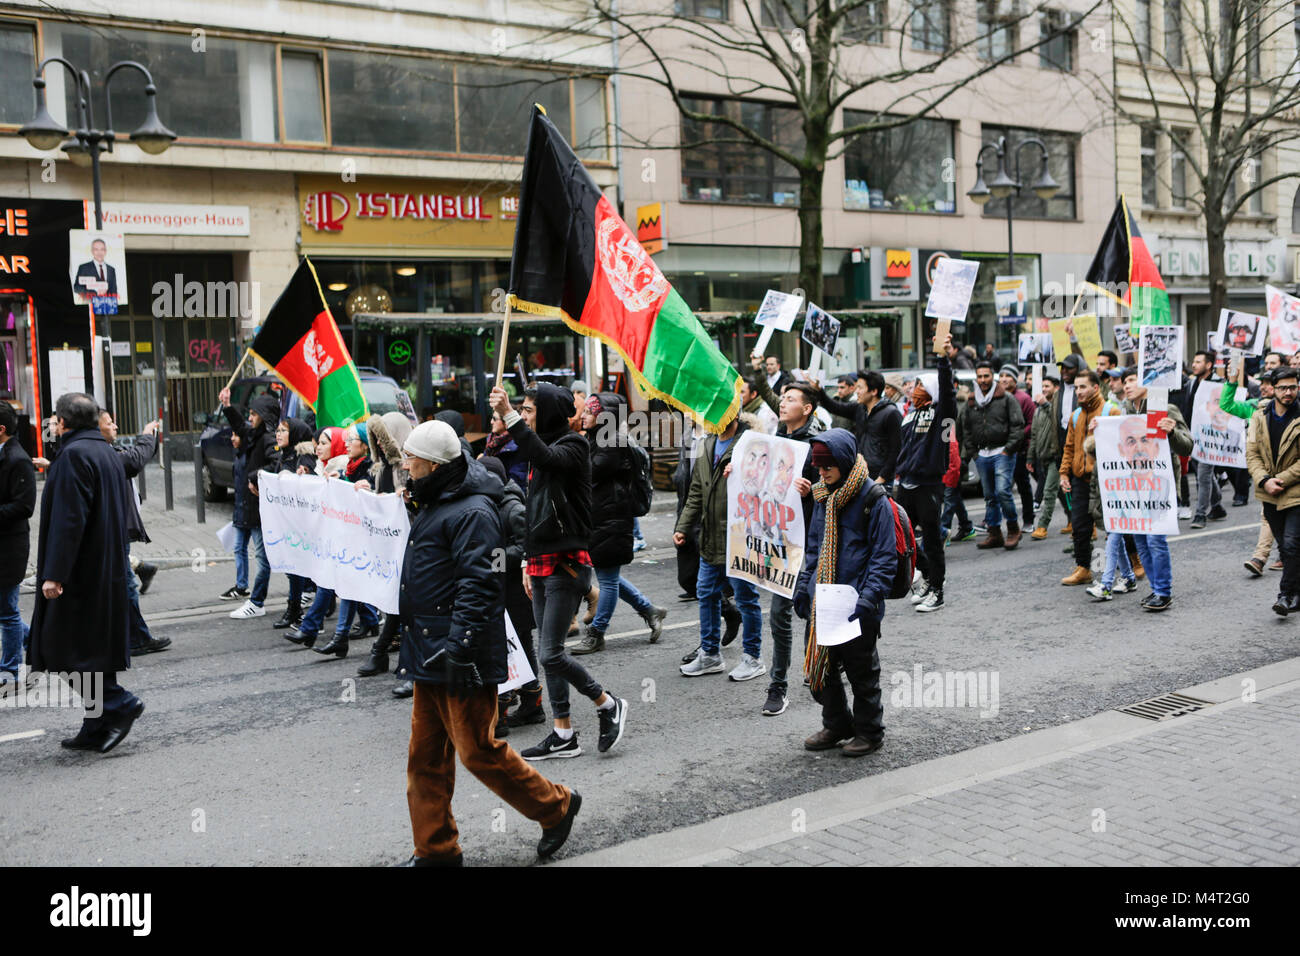 Frankfurt, Germany. 17th February 2018. Protesters march through Frankfurt. Afghans and German supporters marched Stock Photo